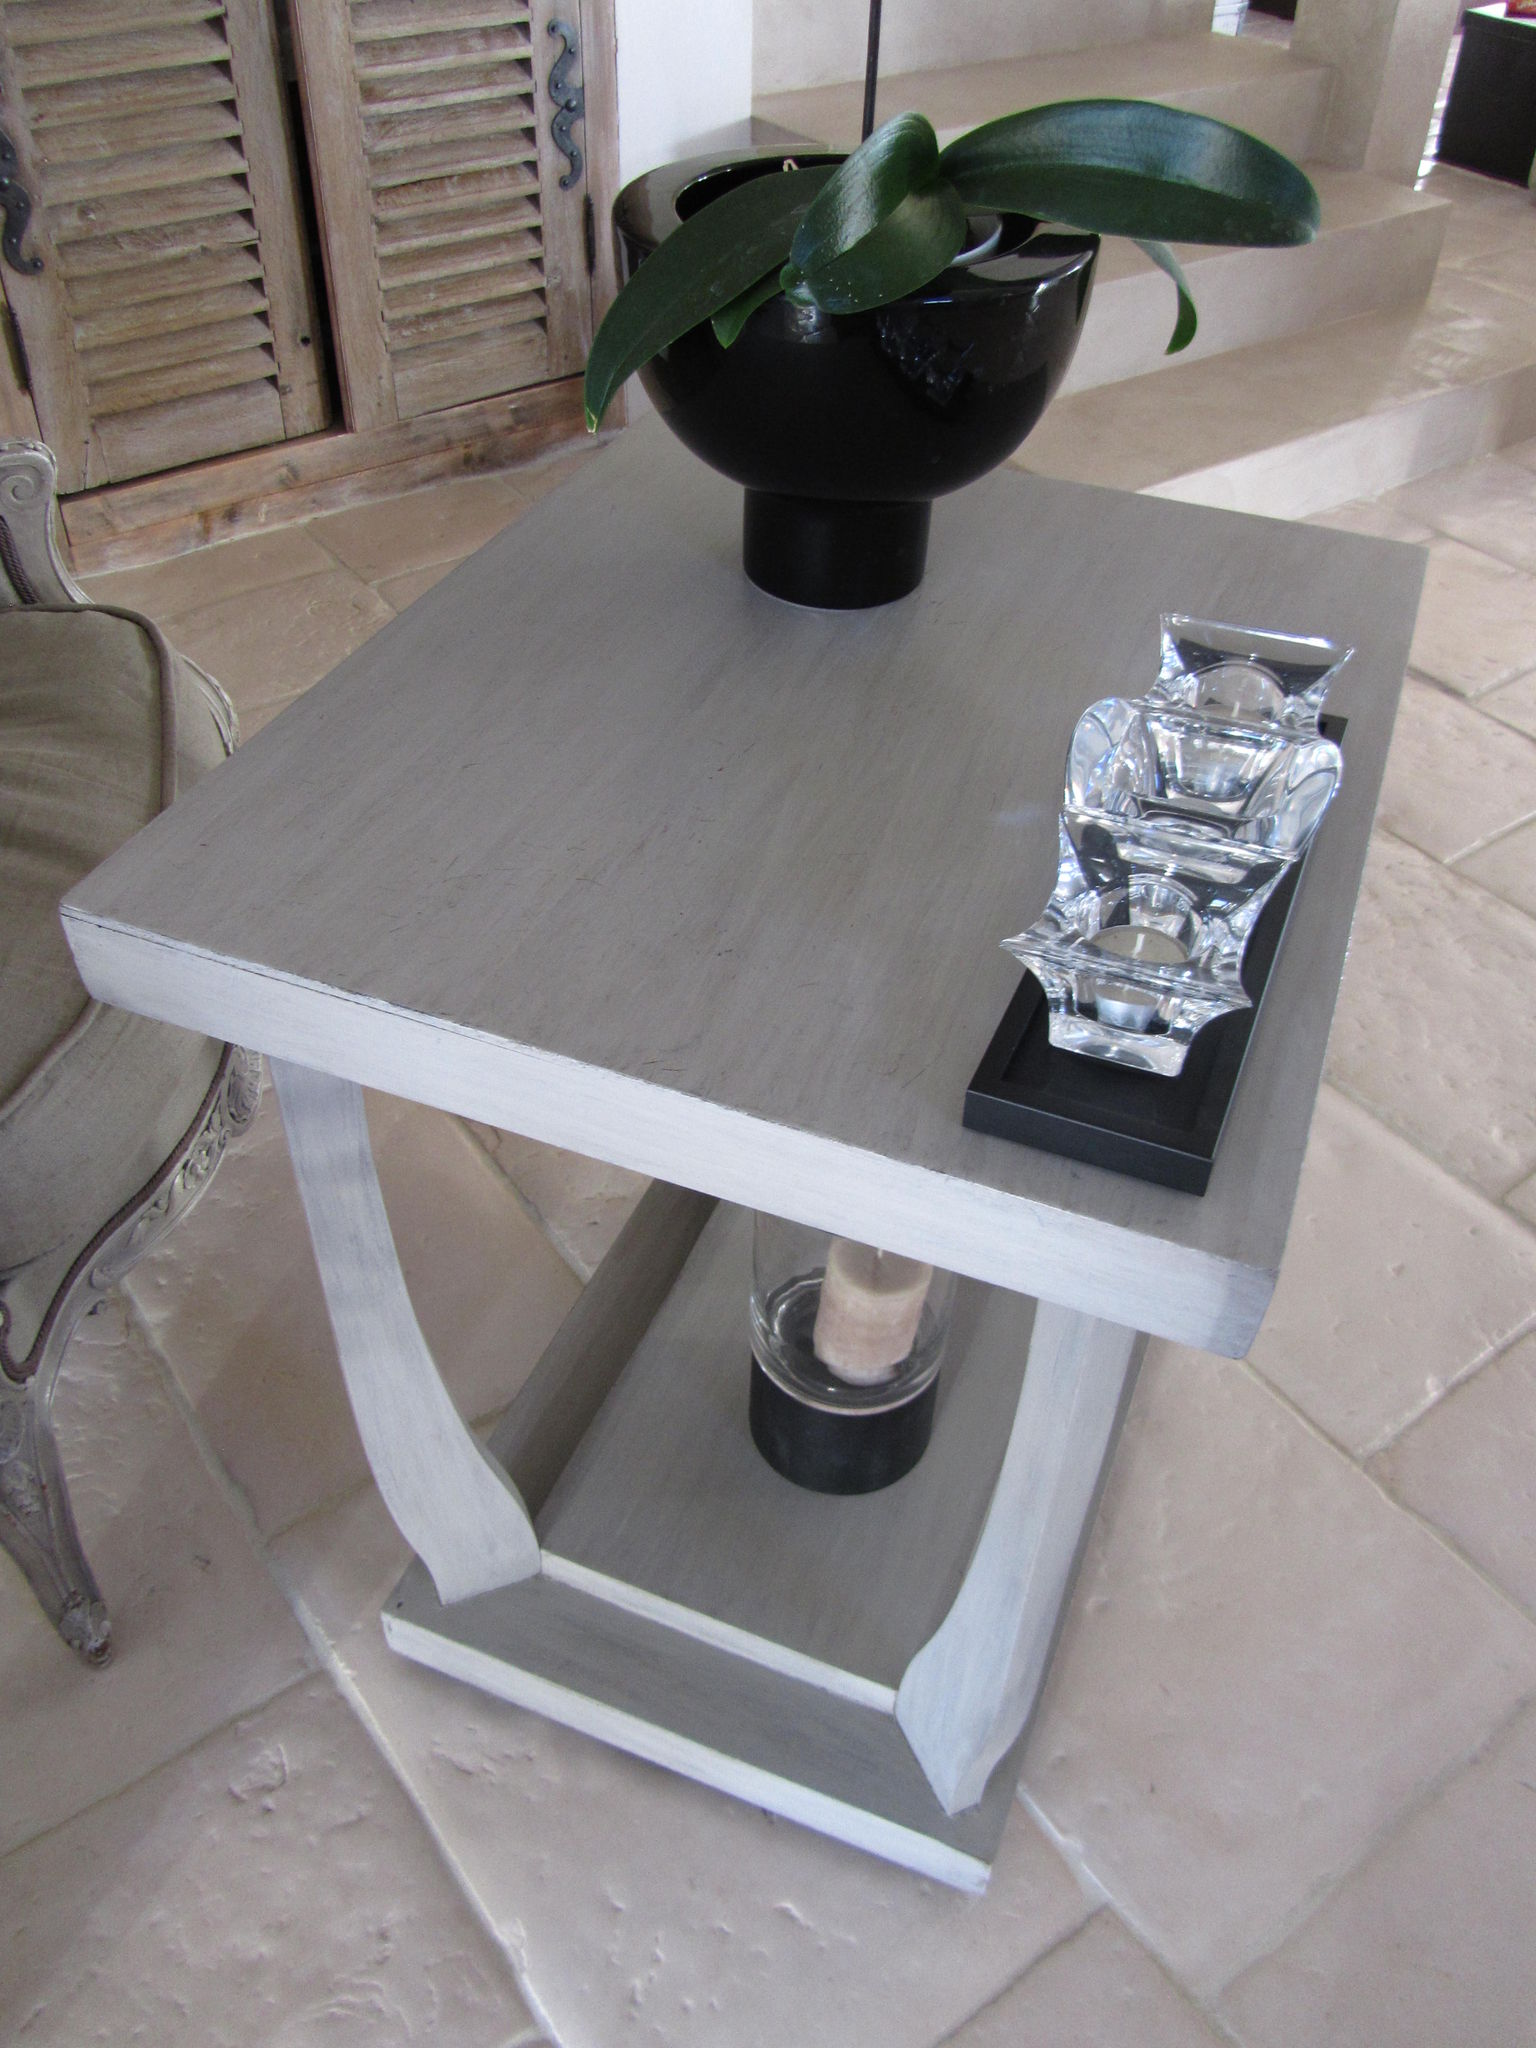 22 patine sur une table d appoint photo de deco quot les patines sur meubles quot catherine